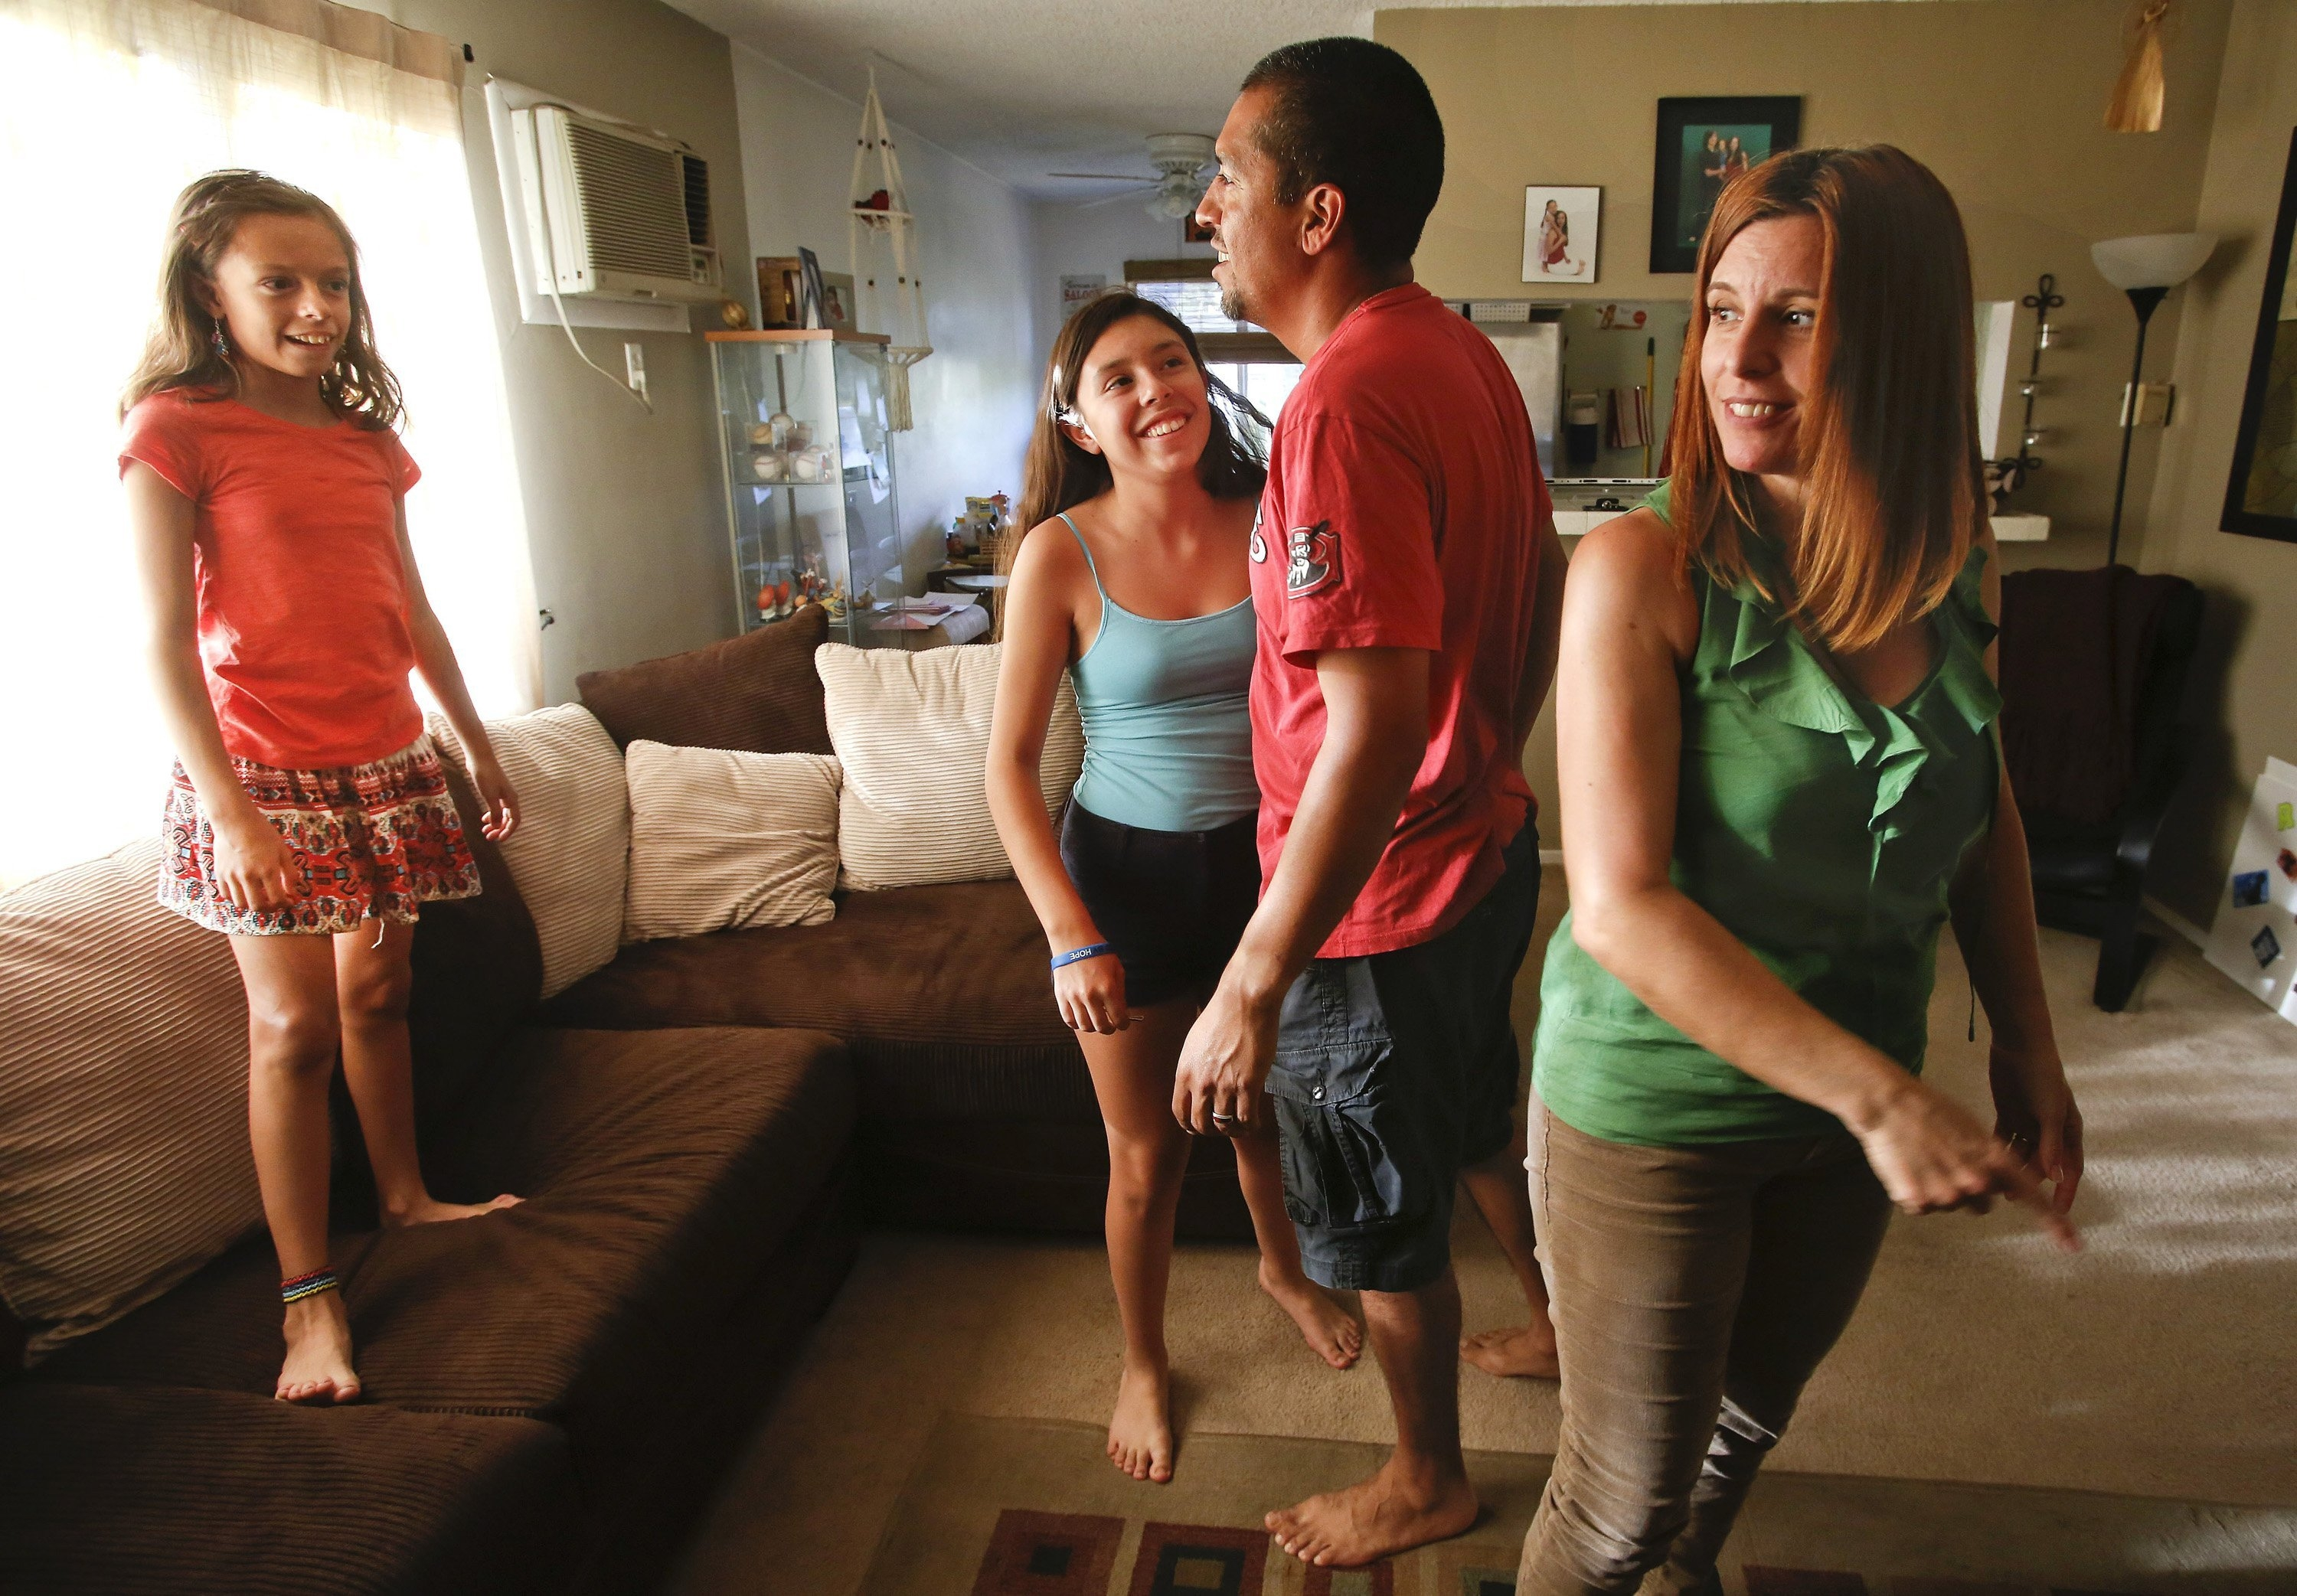 The Macias family -- Jenesee, 10, left; Sabreena, 12; Victor, 40, and Shannon, 44 -- rent an apartment in Eagle Rock, a Los Angeles neighborhood they love. Victor and Shannon would like to buy a house there, but a financial planner advises that they should wait until they have more savings. (Mel Melcon/Los Angeles Times/MCT)